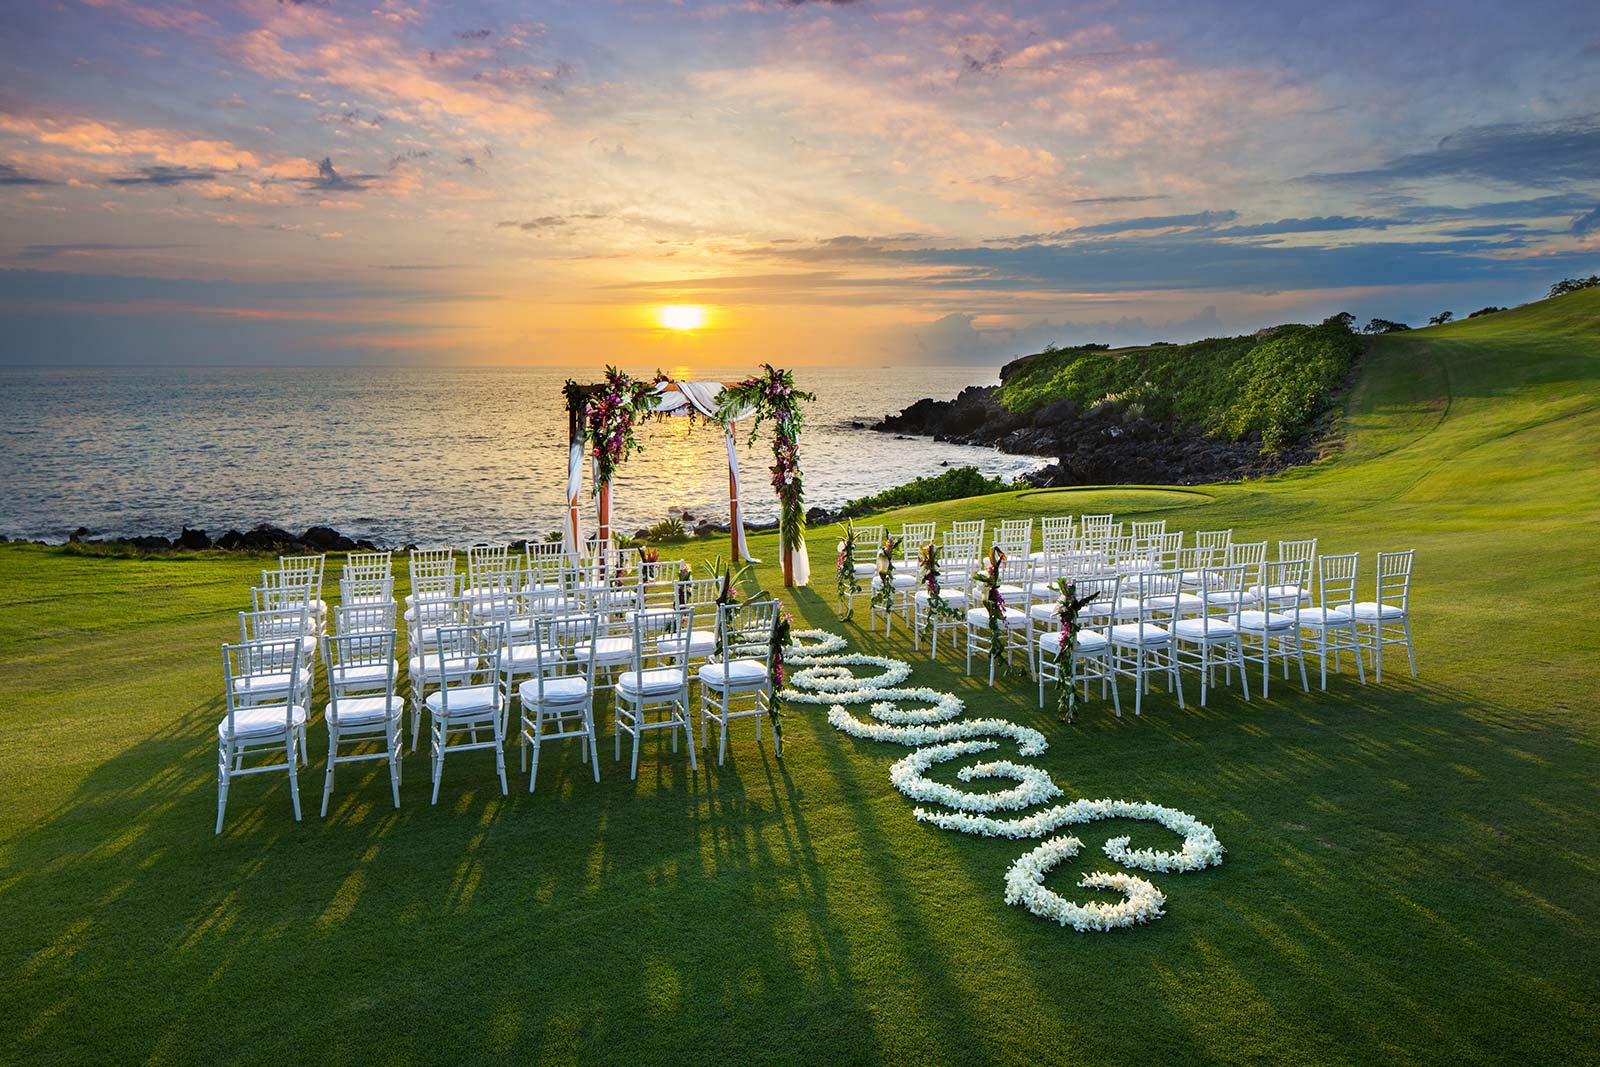 wedding reception during sunrise over ocean view